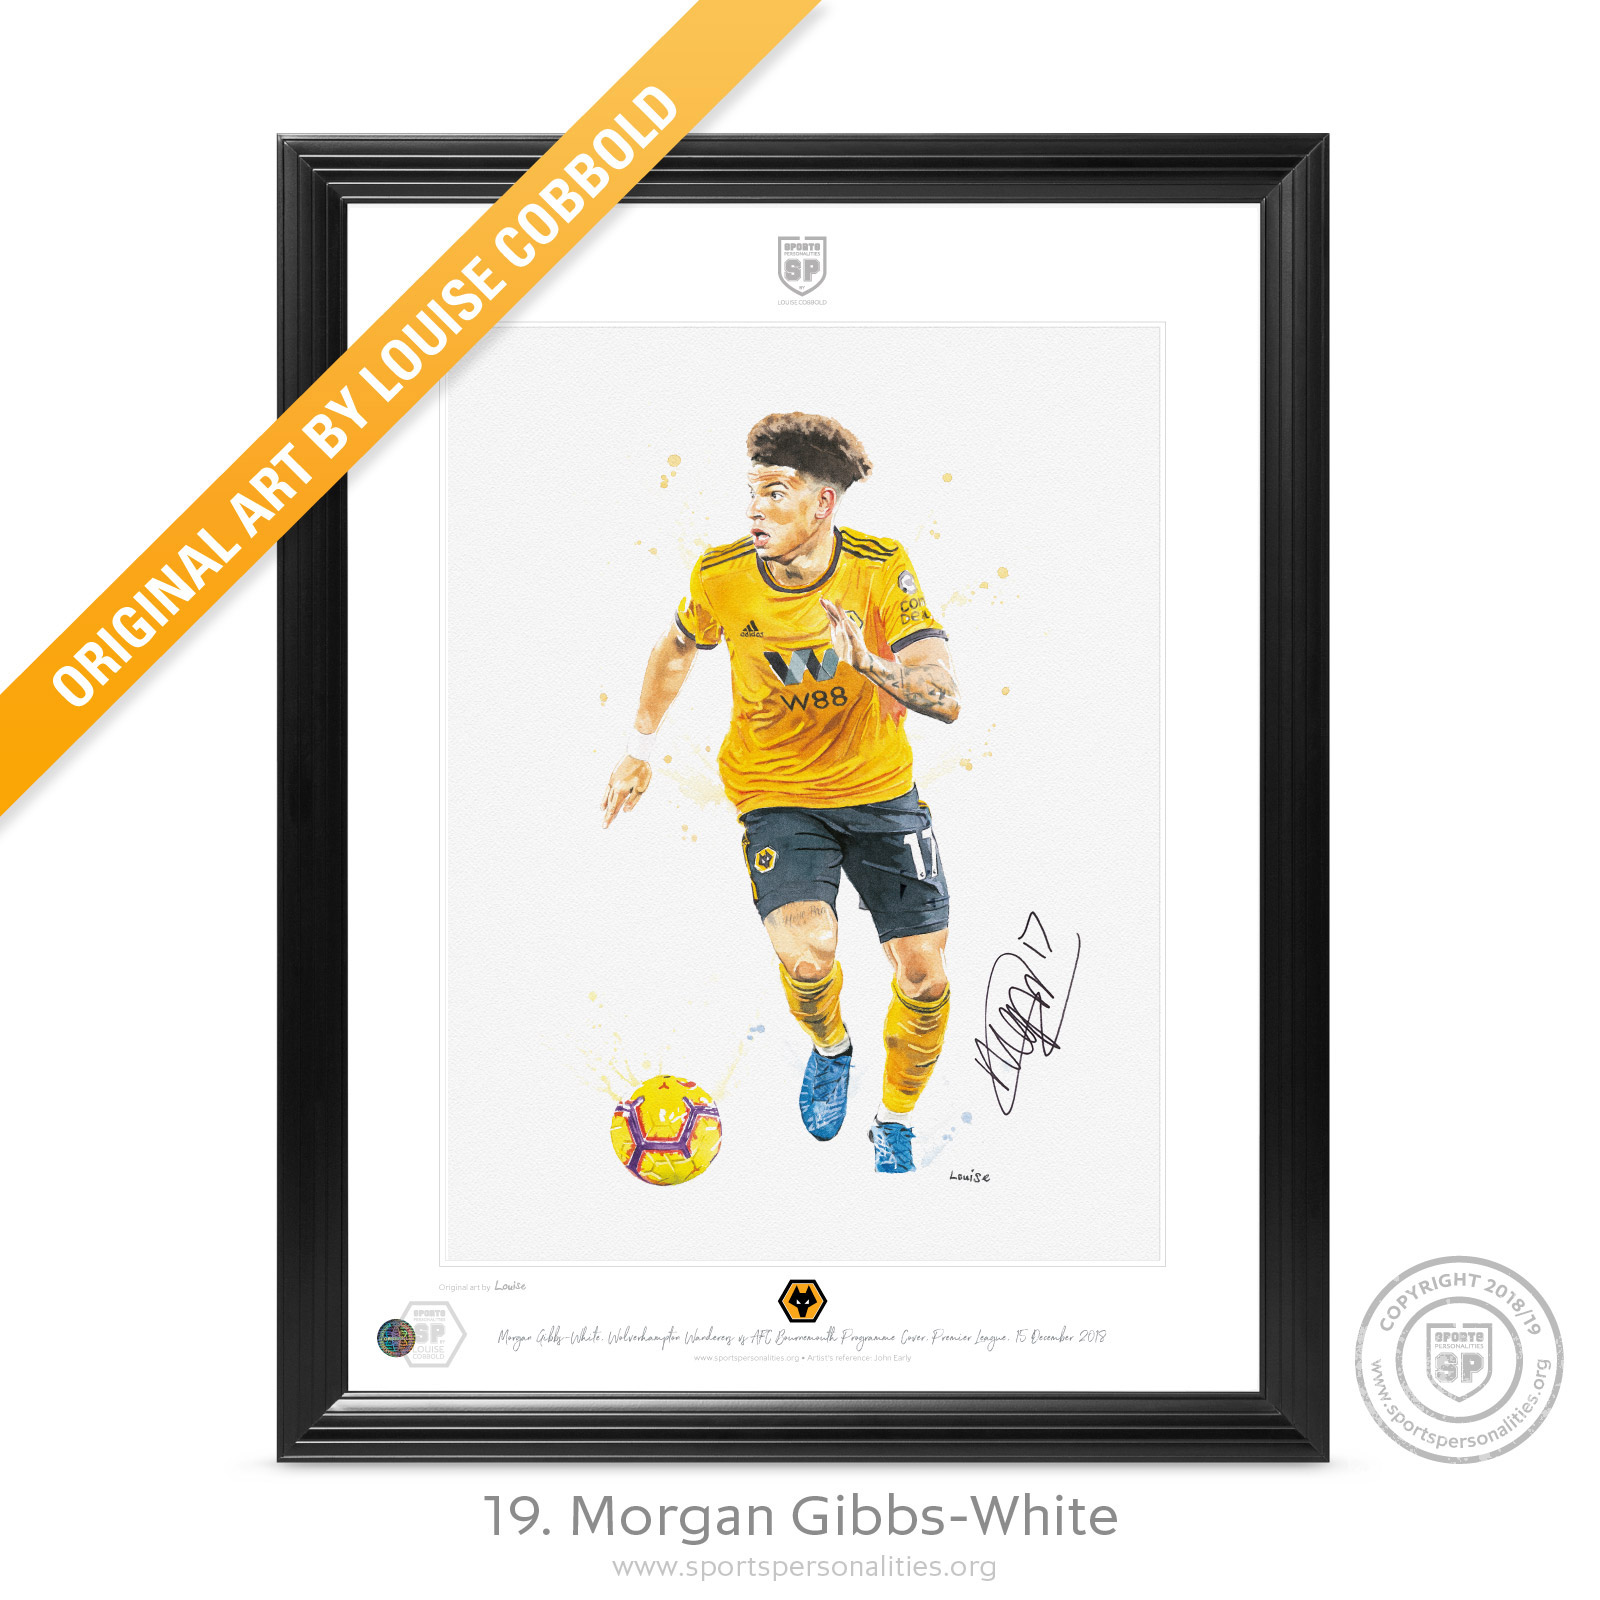 19.-Morgan-Gibbs-White.jpg